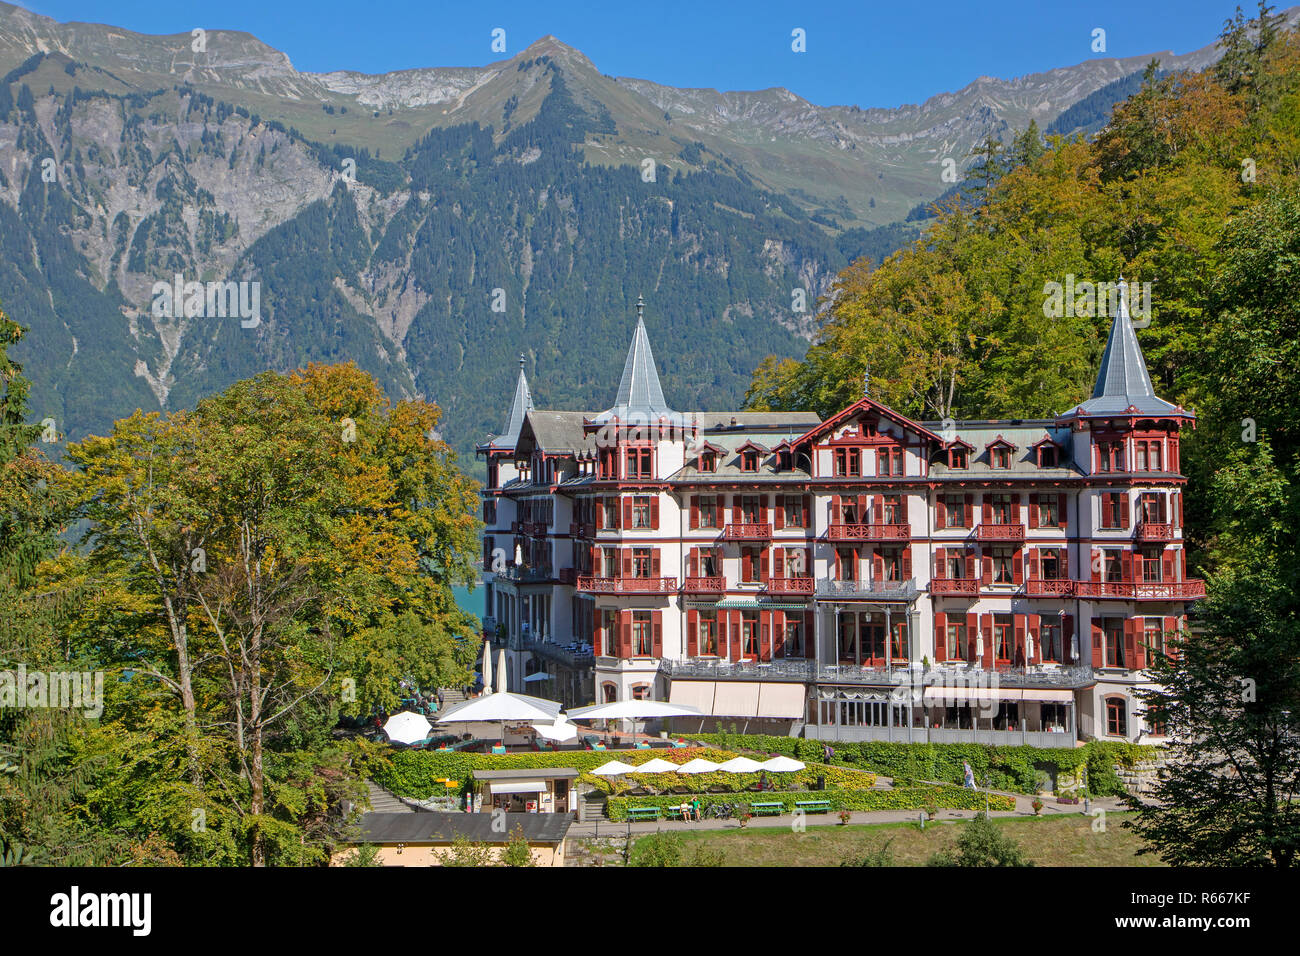 Grandhotel Giessbach Stock Photo